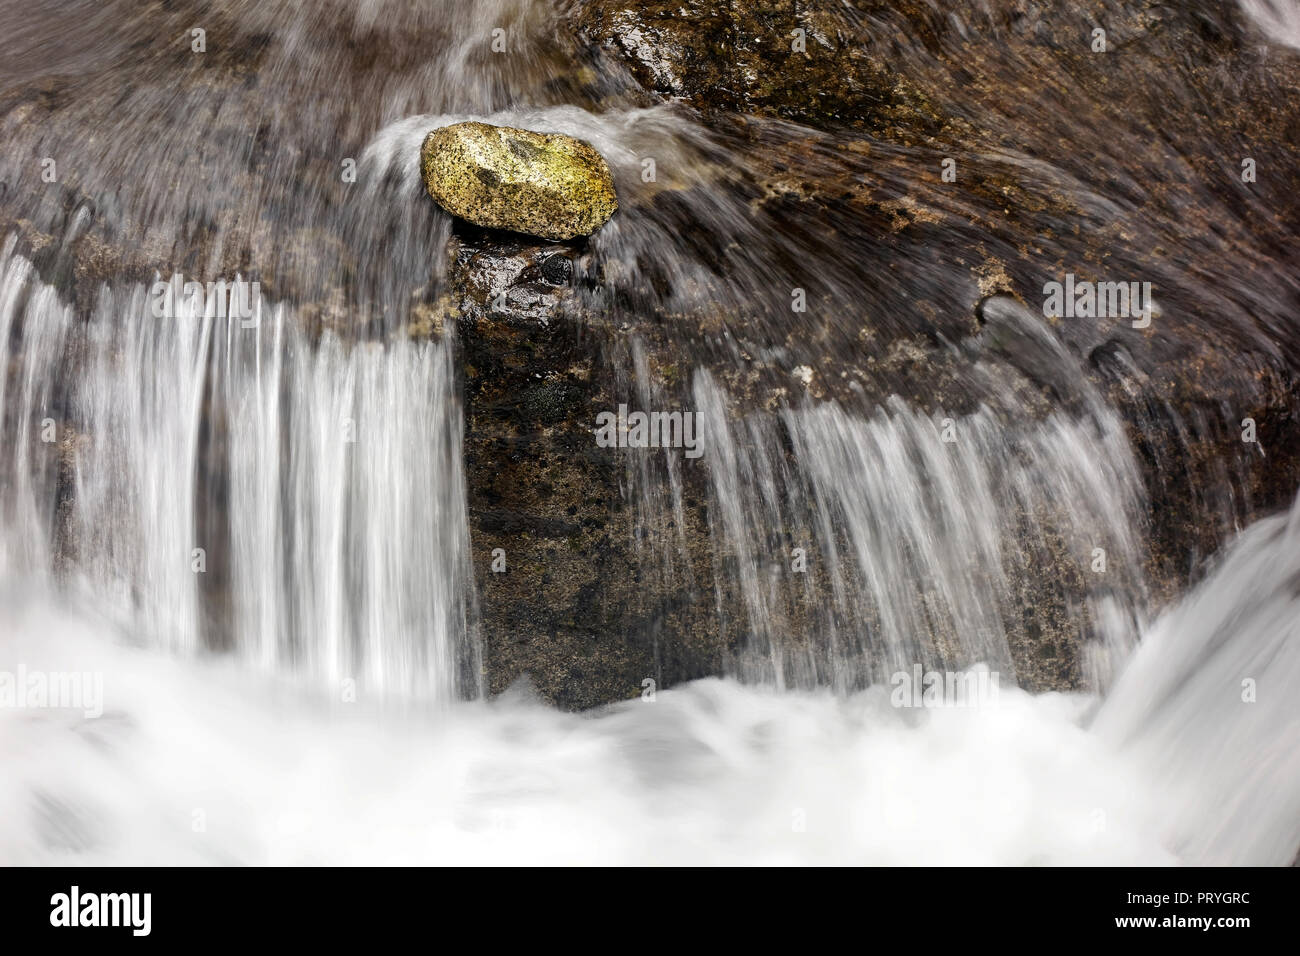 Stone lies in front of a small waterfall in current, mountain stream, symbolism, steadfastness, all against one - Stock Image